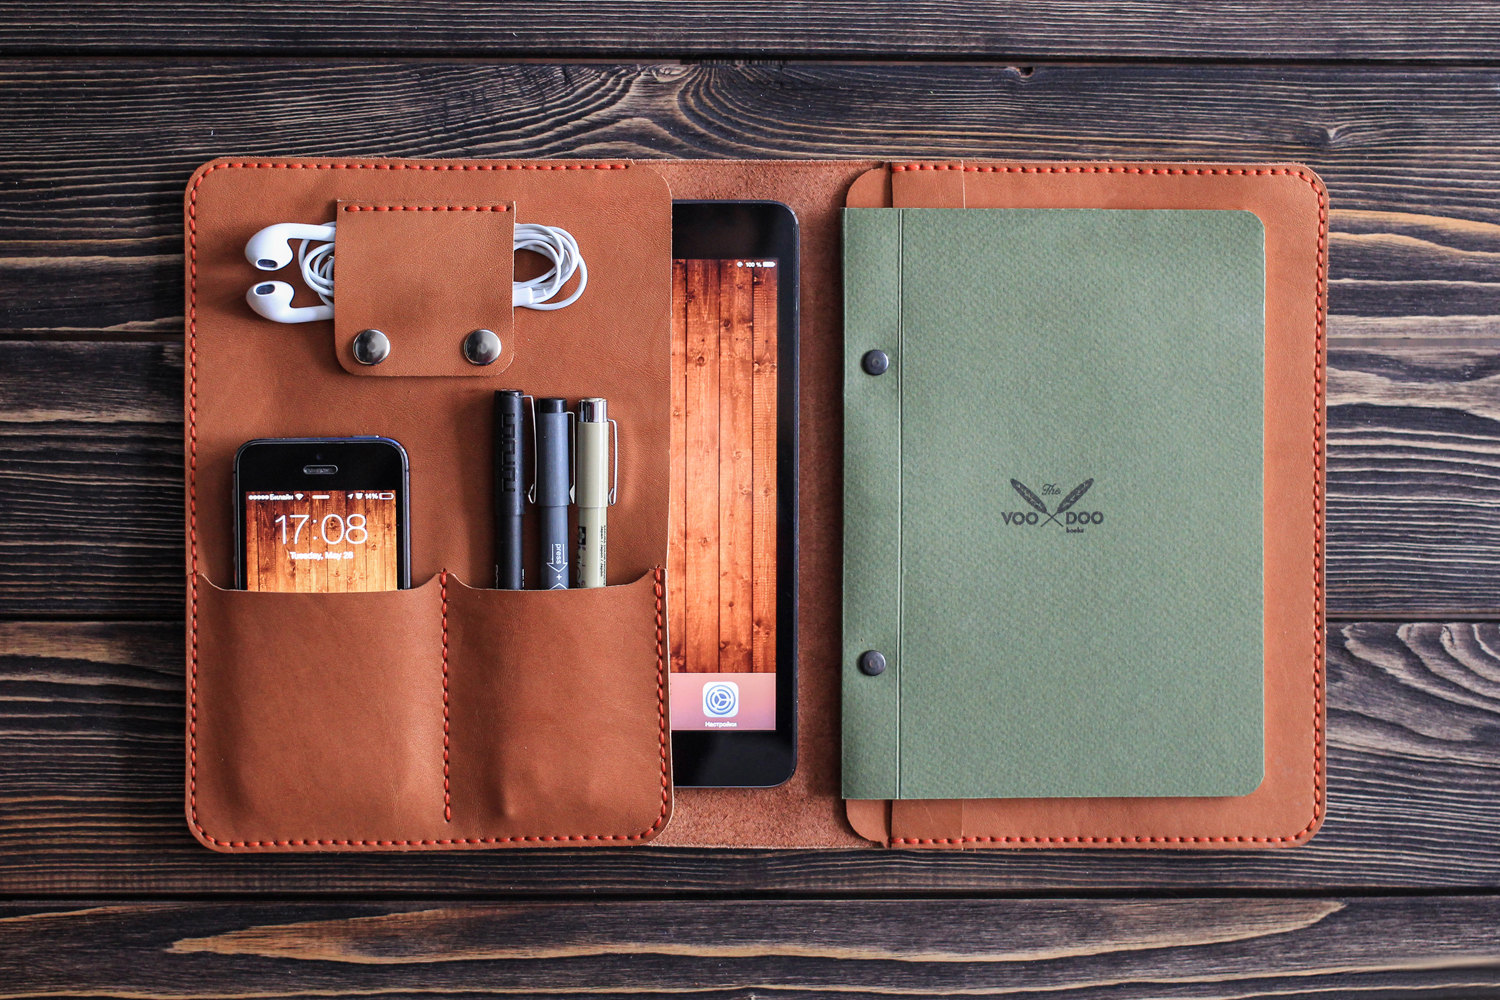 Ipad Mini Leather Folio Ipad And Document Organizer Ipad